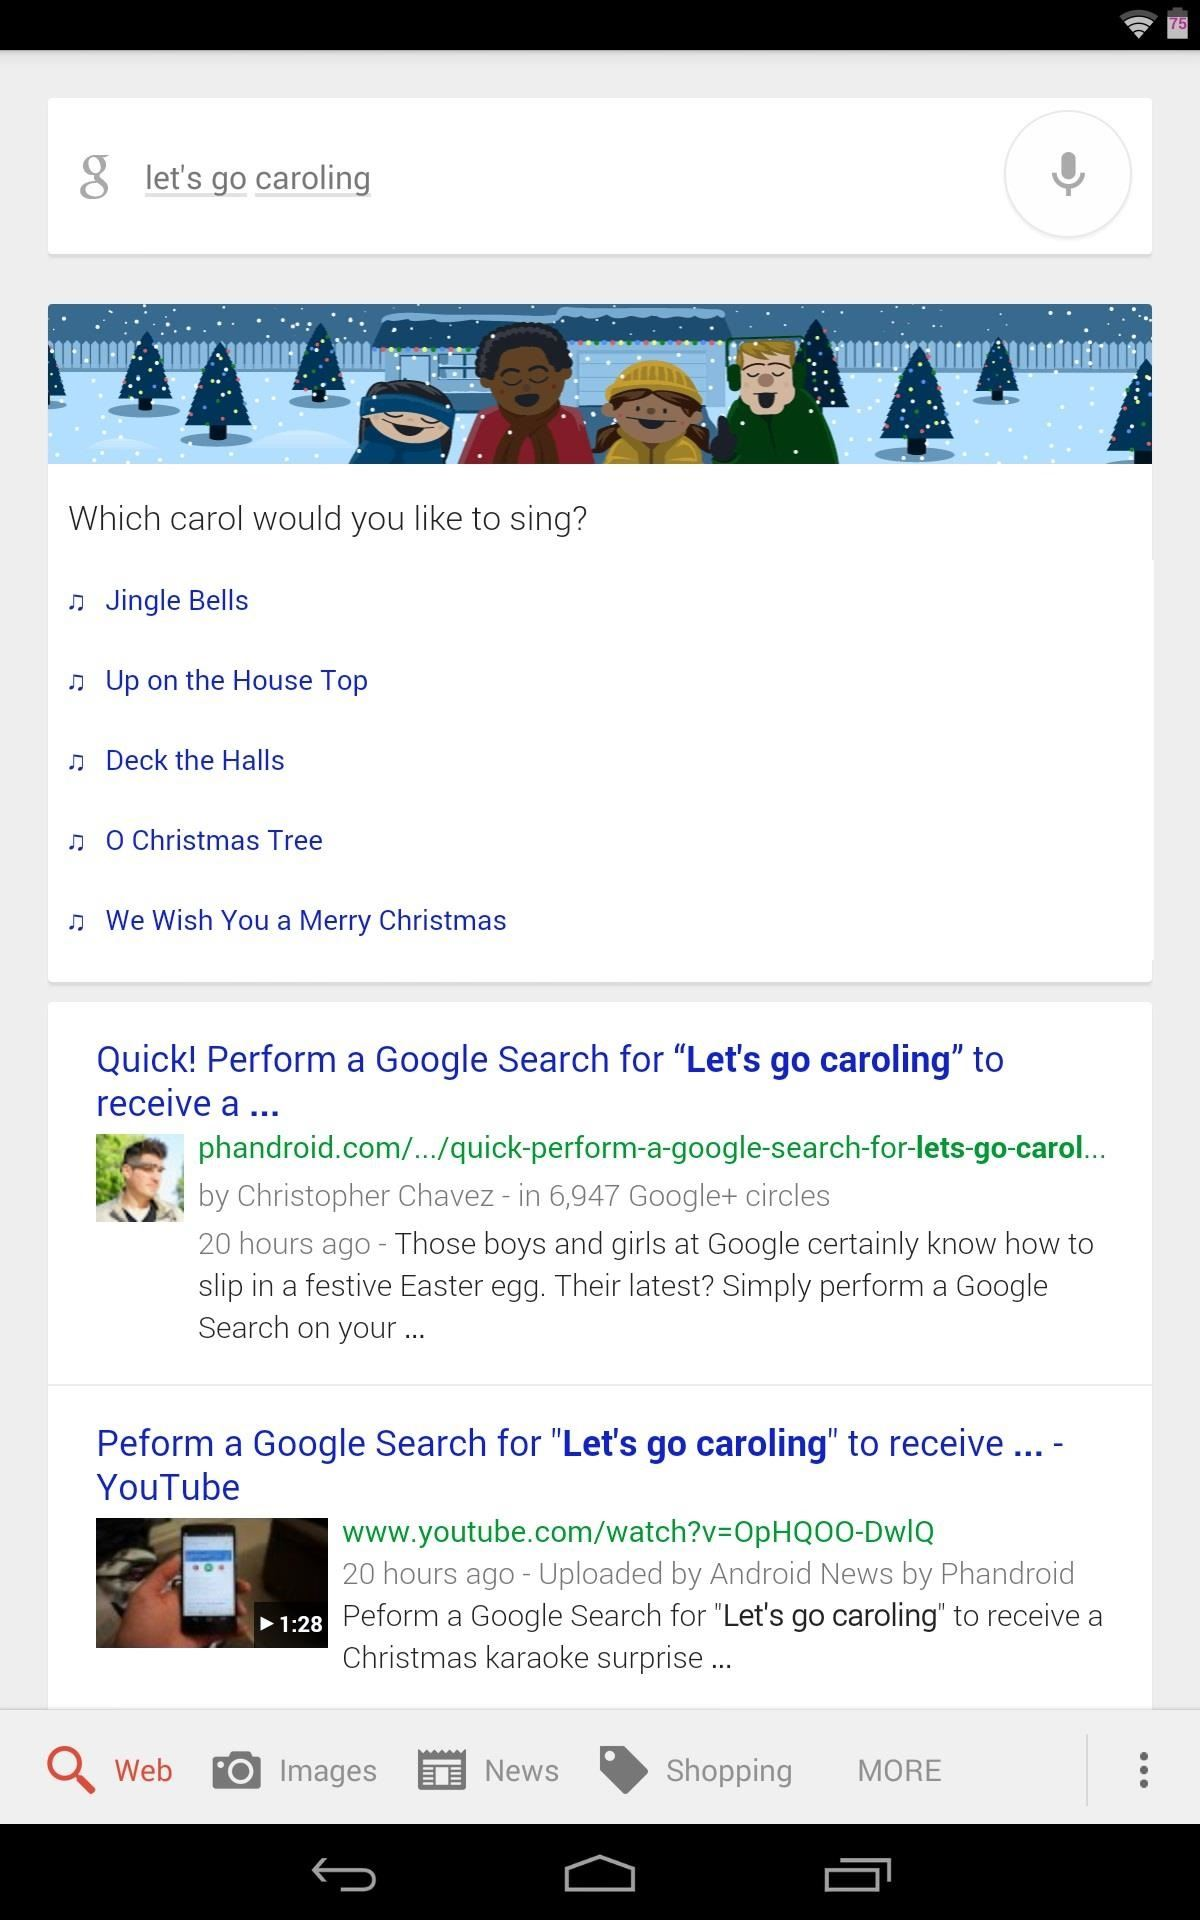 I Rock The Party 2 Chainz together with Go Caroling With Google Nows Christmas Song Karaoke Cheat Sheet For Android 0149994 as well Selena Gomez Legal Drink Turning 21 Dons Tiny Leather Hotpants Jay Leno Performance likewise Summer Fall Outfit together with 5th Ashes Test Peter Siddle Sends Michael Clarke Into Sunset With Finale Win 1651753. on oscar 2016 watch online highlights